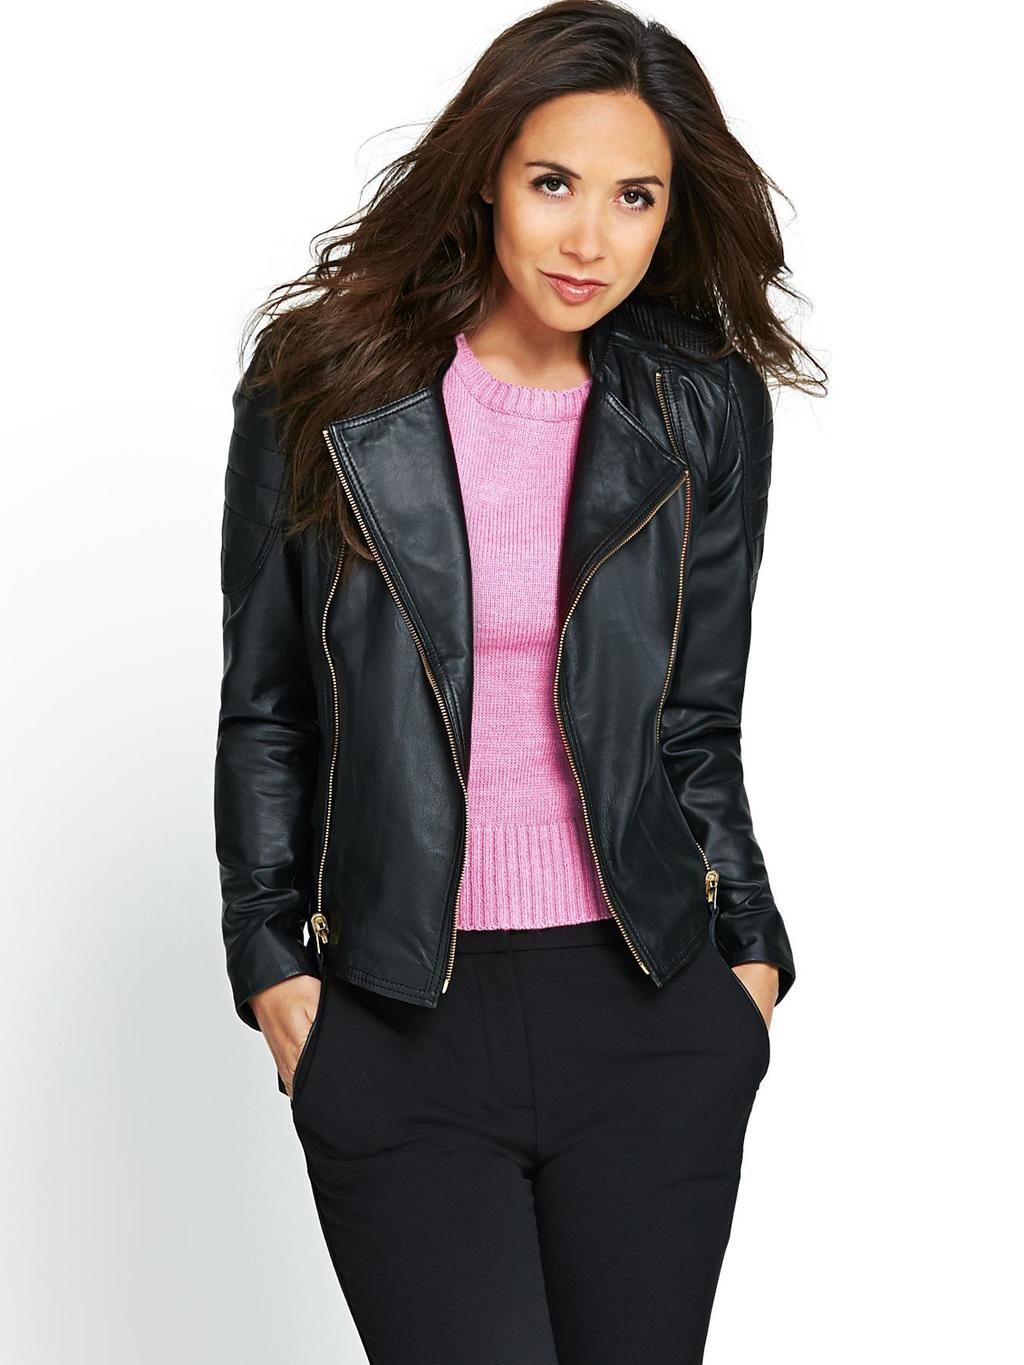 Gold Trim Leather Biker Jacket, Black - pattern: plain; style: biker; collar: asymmetric biker; fit: slim fit; predominant colour: black; occasions: casual, evening; length: standard; fibres: leather - 100%; sleeve length: long sleeve; sleeve style: standard; texture group: leather; collar break: medium; pattern type: fabric; season: s/s 2014